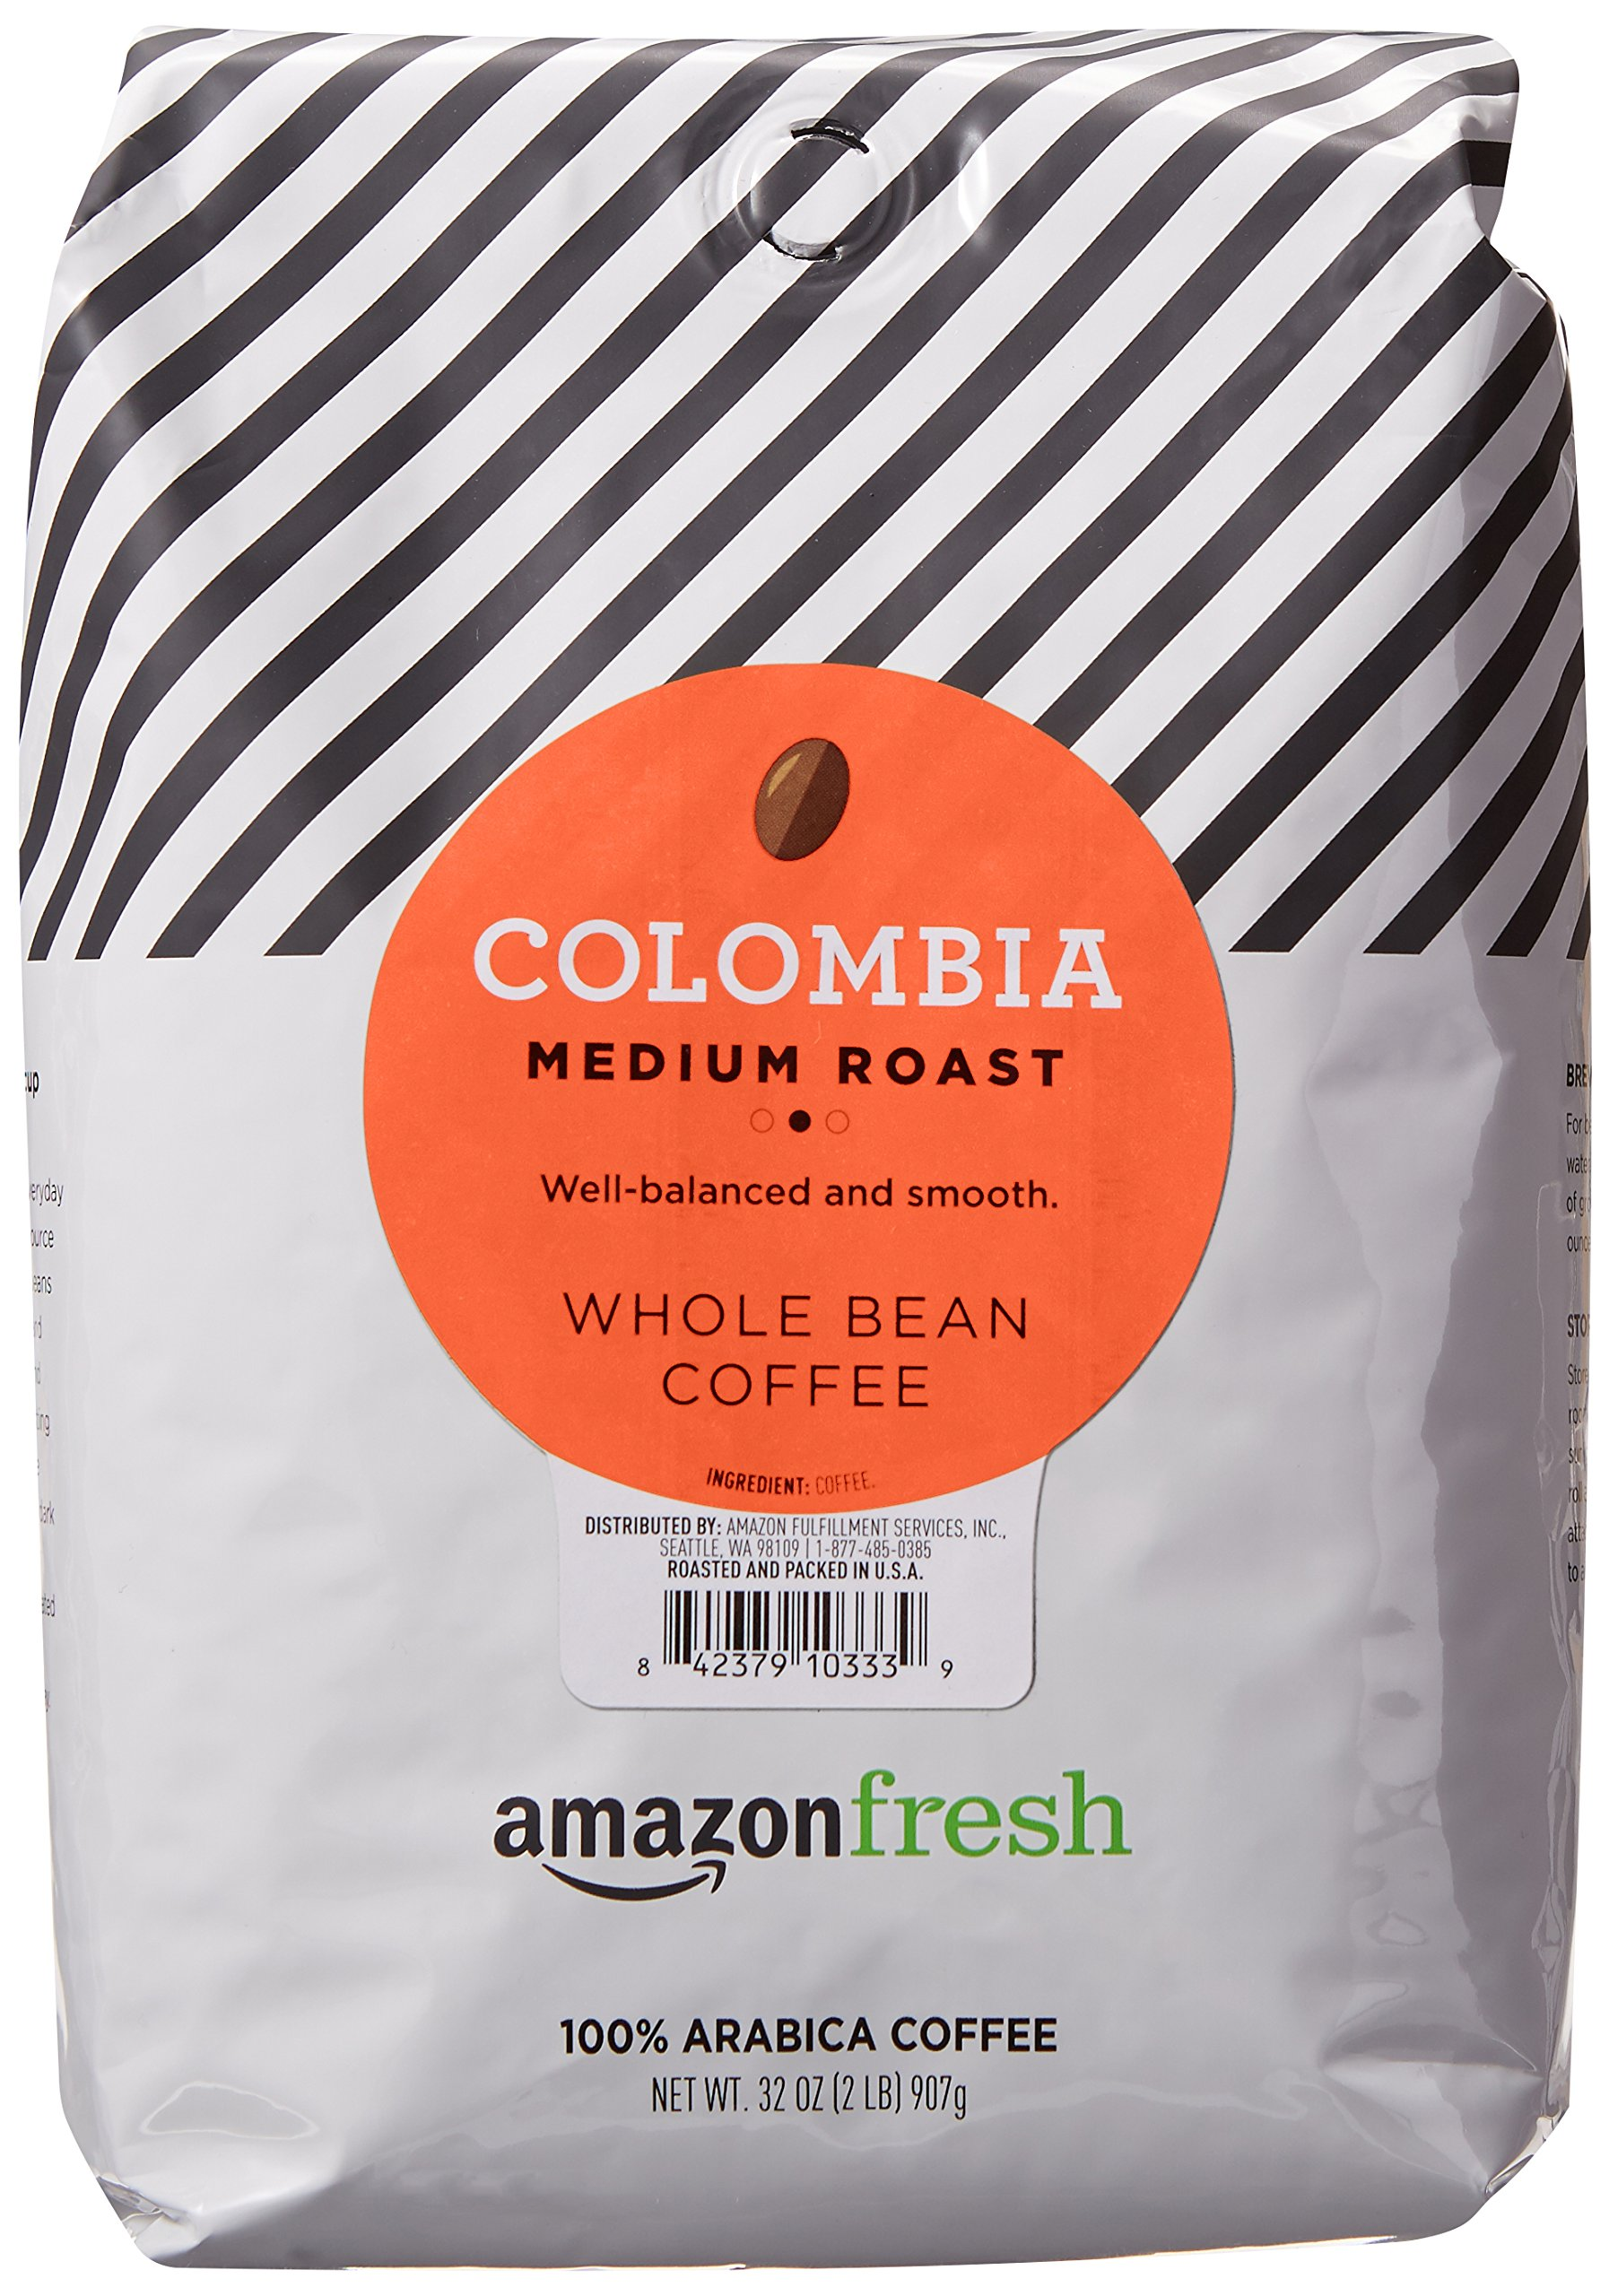 AmazonFresh Colombia Whole Bean Coffee, Medium Roast, 32 Ounce by AmazonFresh